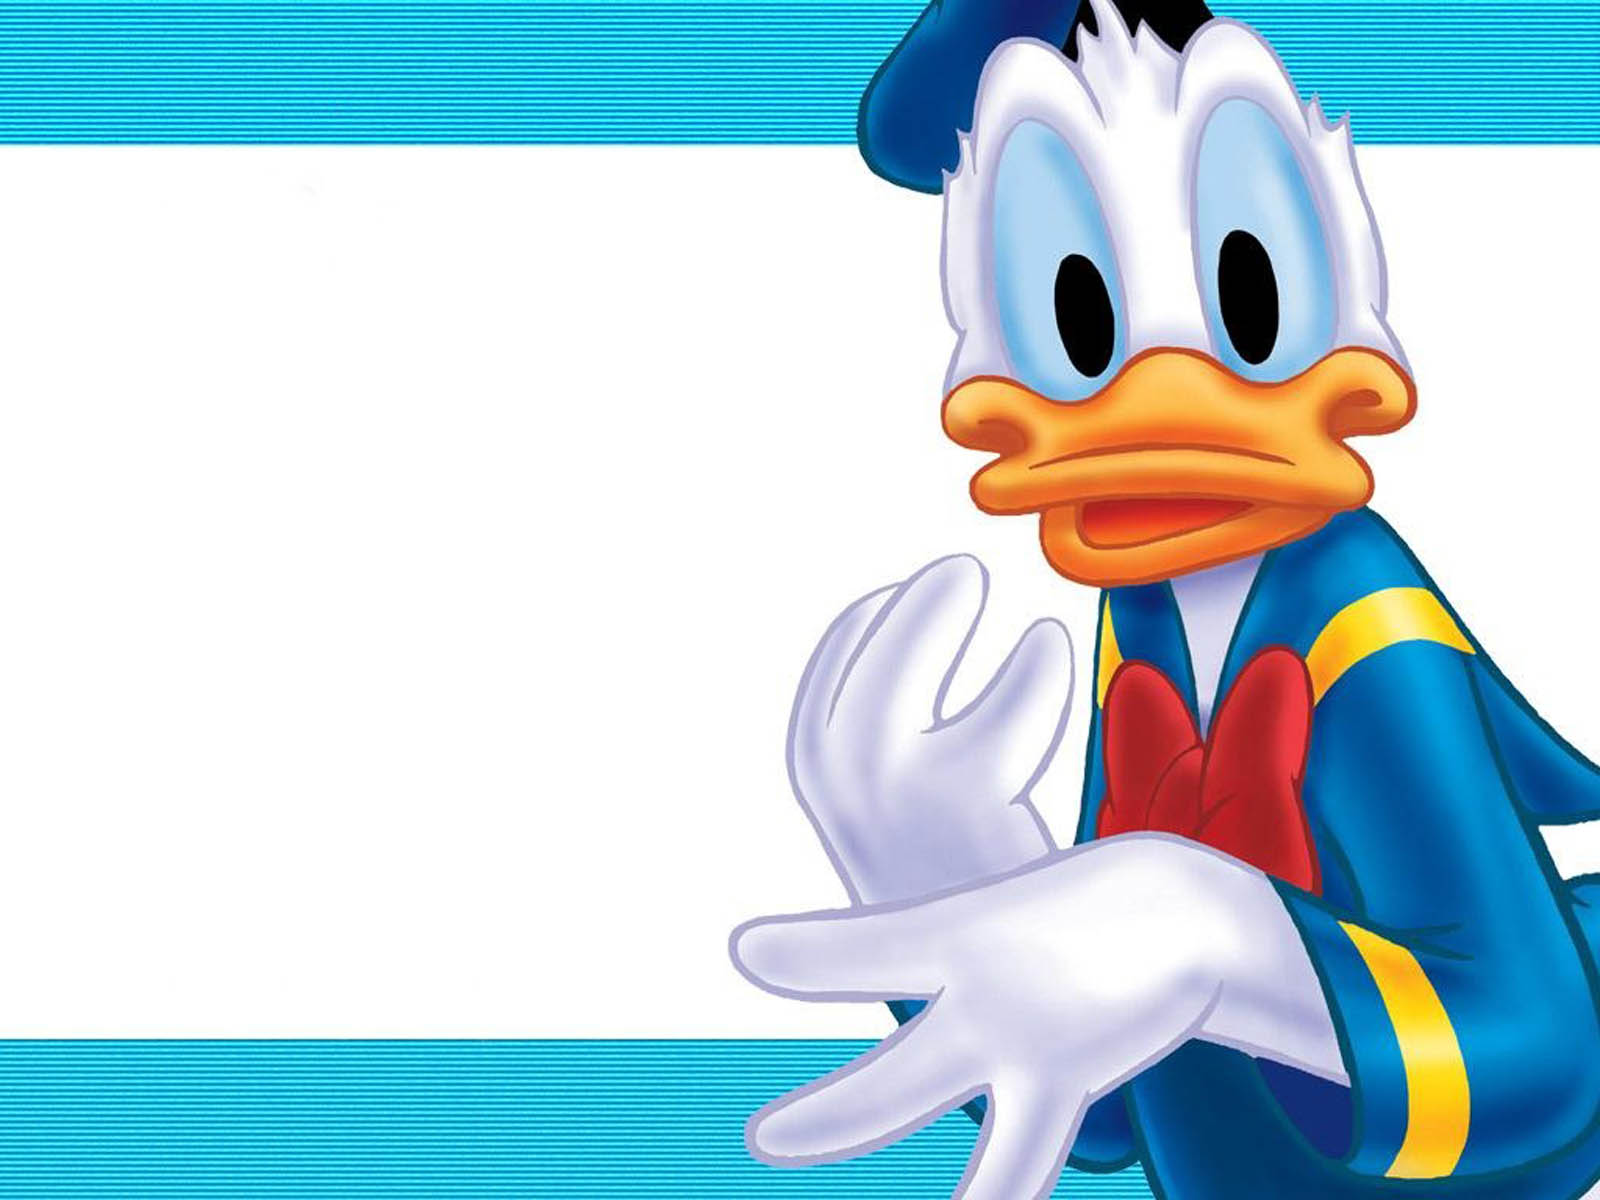 Donald duck hd images - photo#5